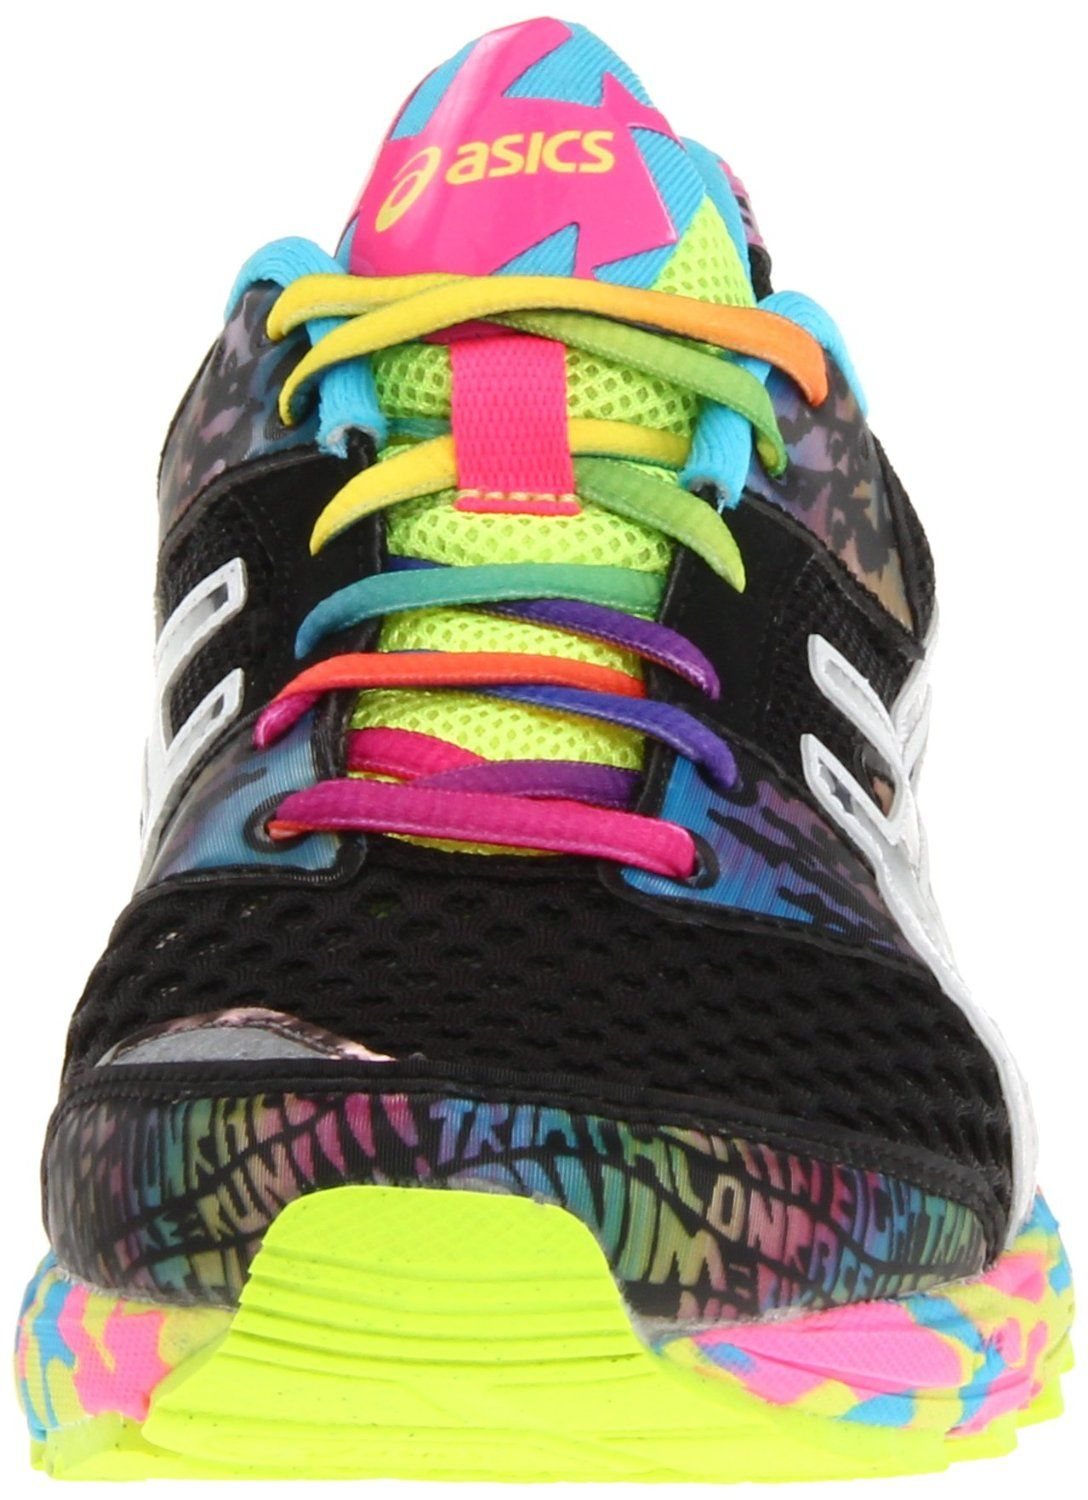 c4ad79bcf71d Amazon.com  ASICS Women s GEL-Noosa Tri 8 Running Shoe  Shoes